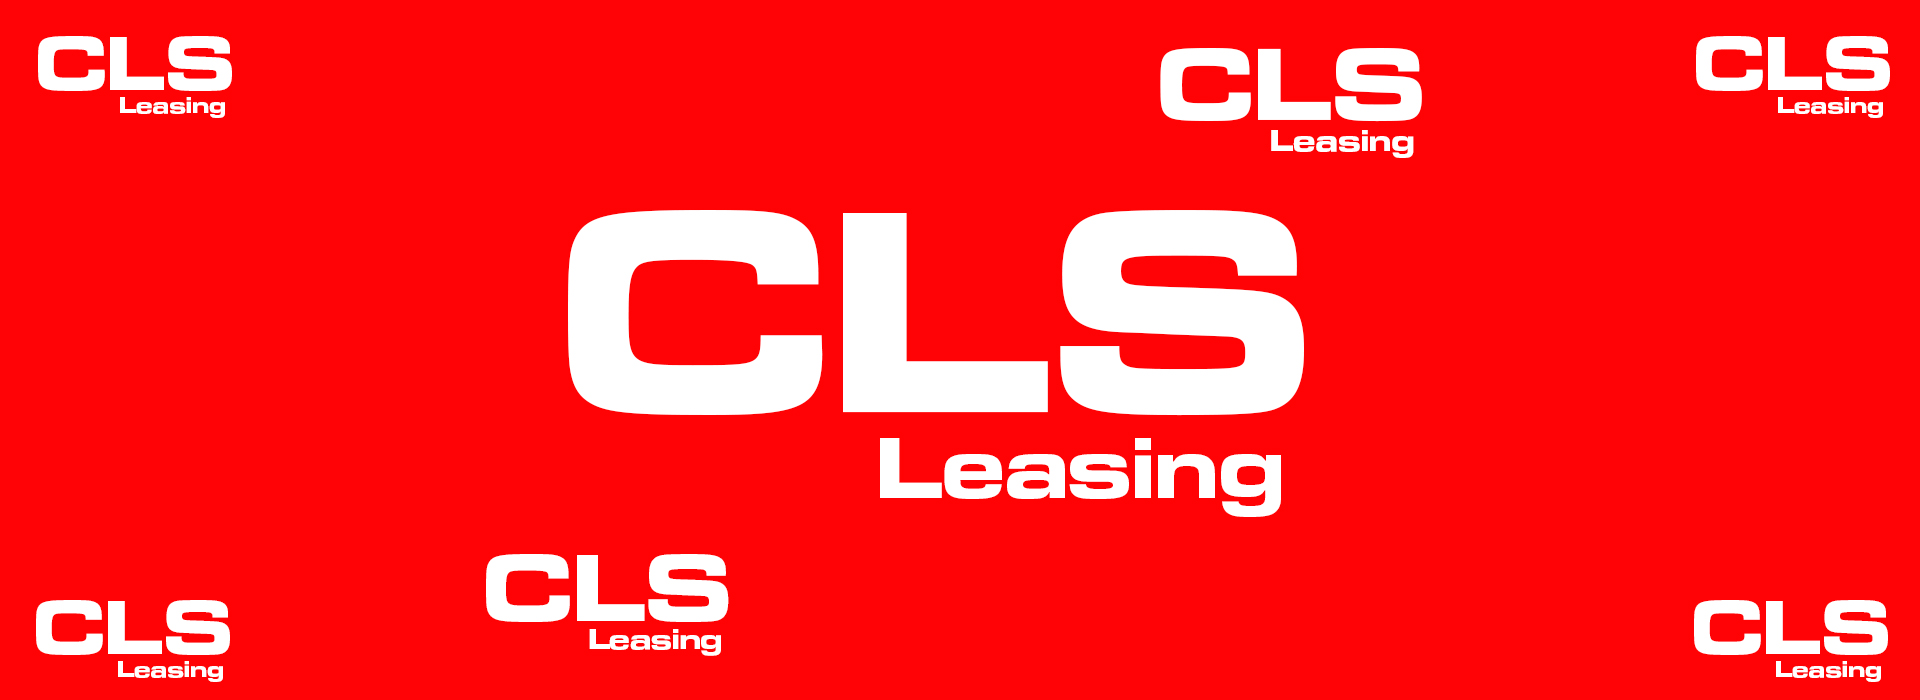 CLS Leasing